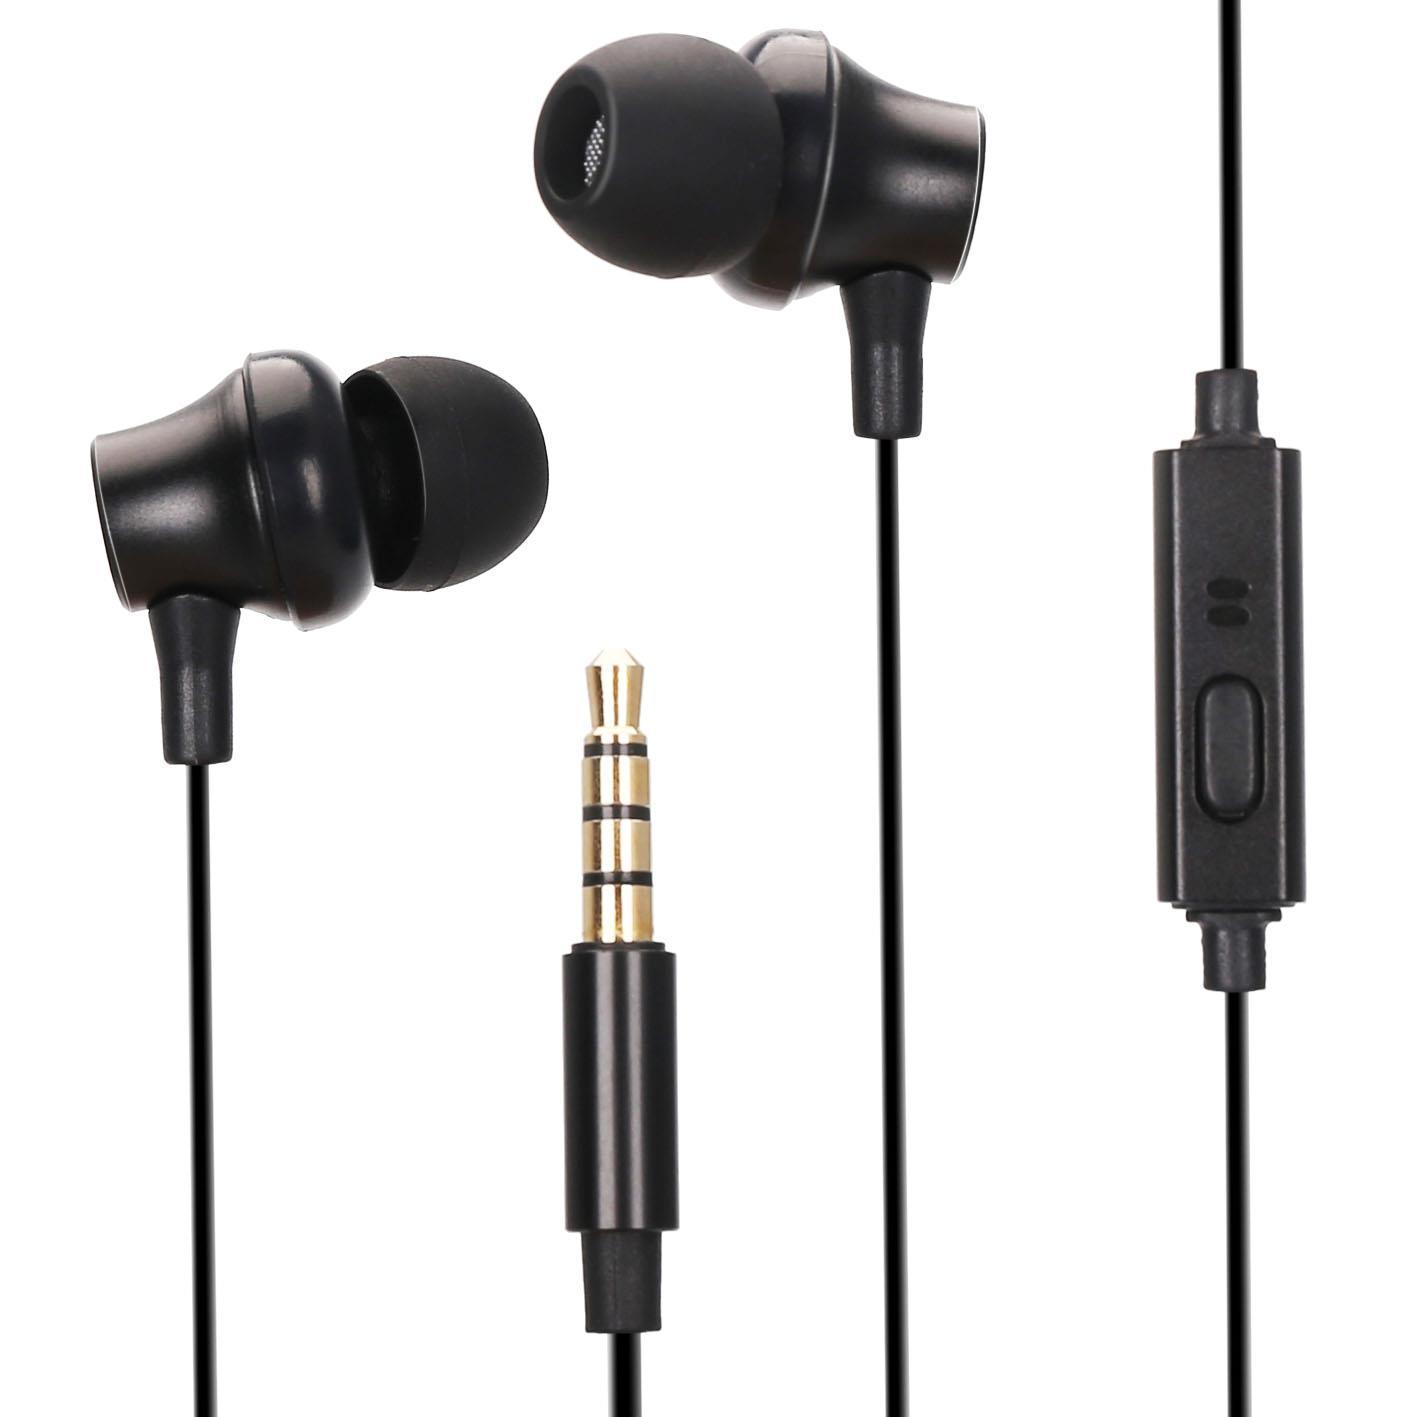 Stereo Wired Best Small Earphones And Headphones With Mic 3.5mm Interface Compatible With Most Table